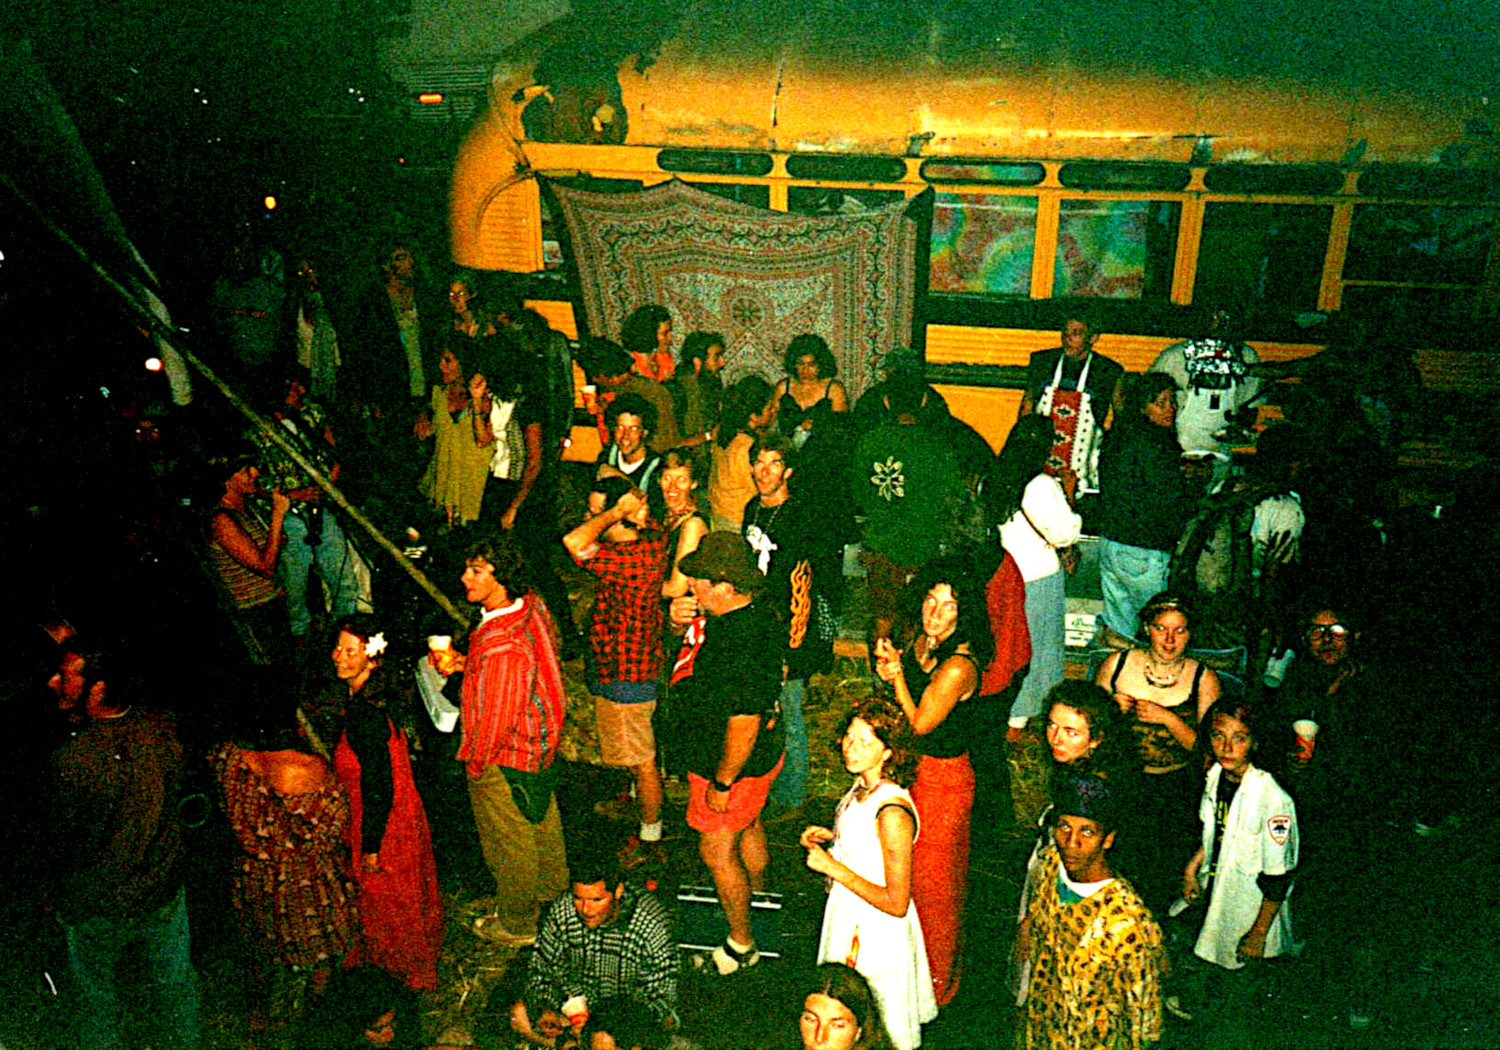 CC_OCF_Teepee party View 2.jpg